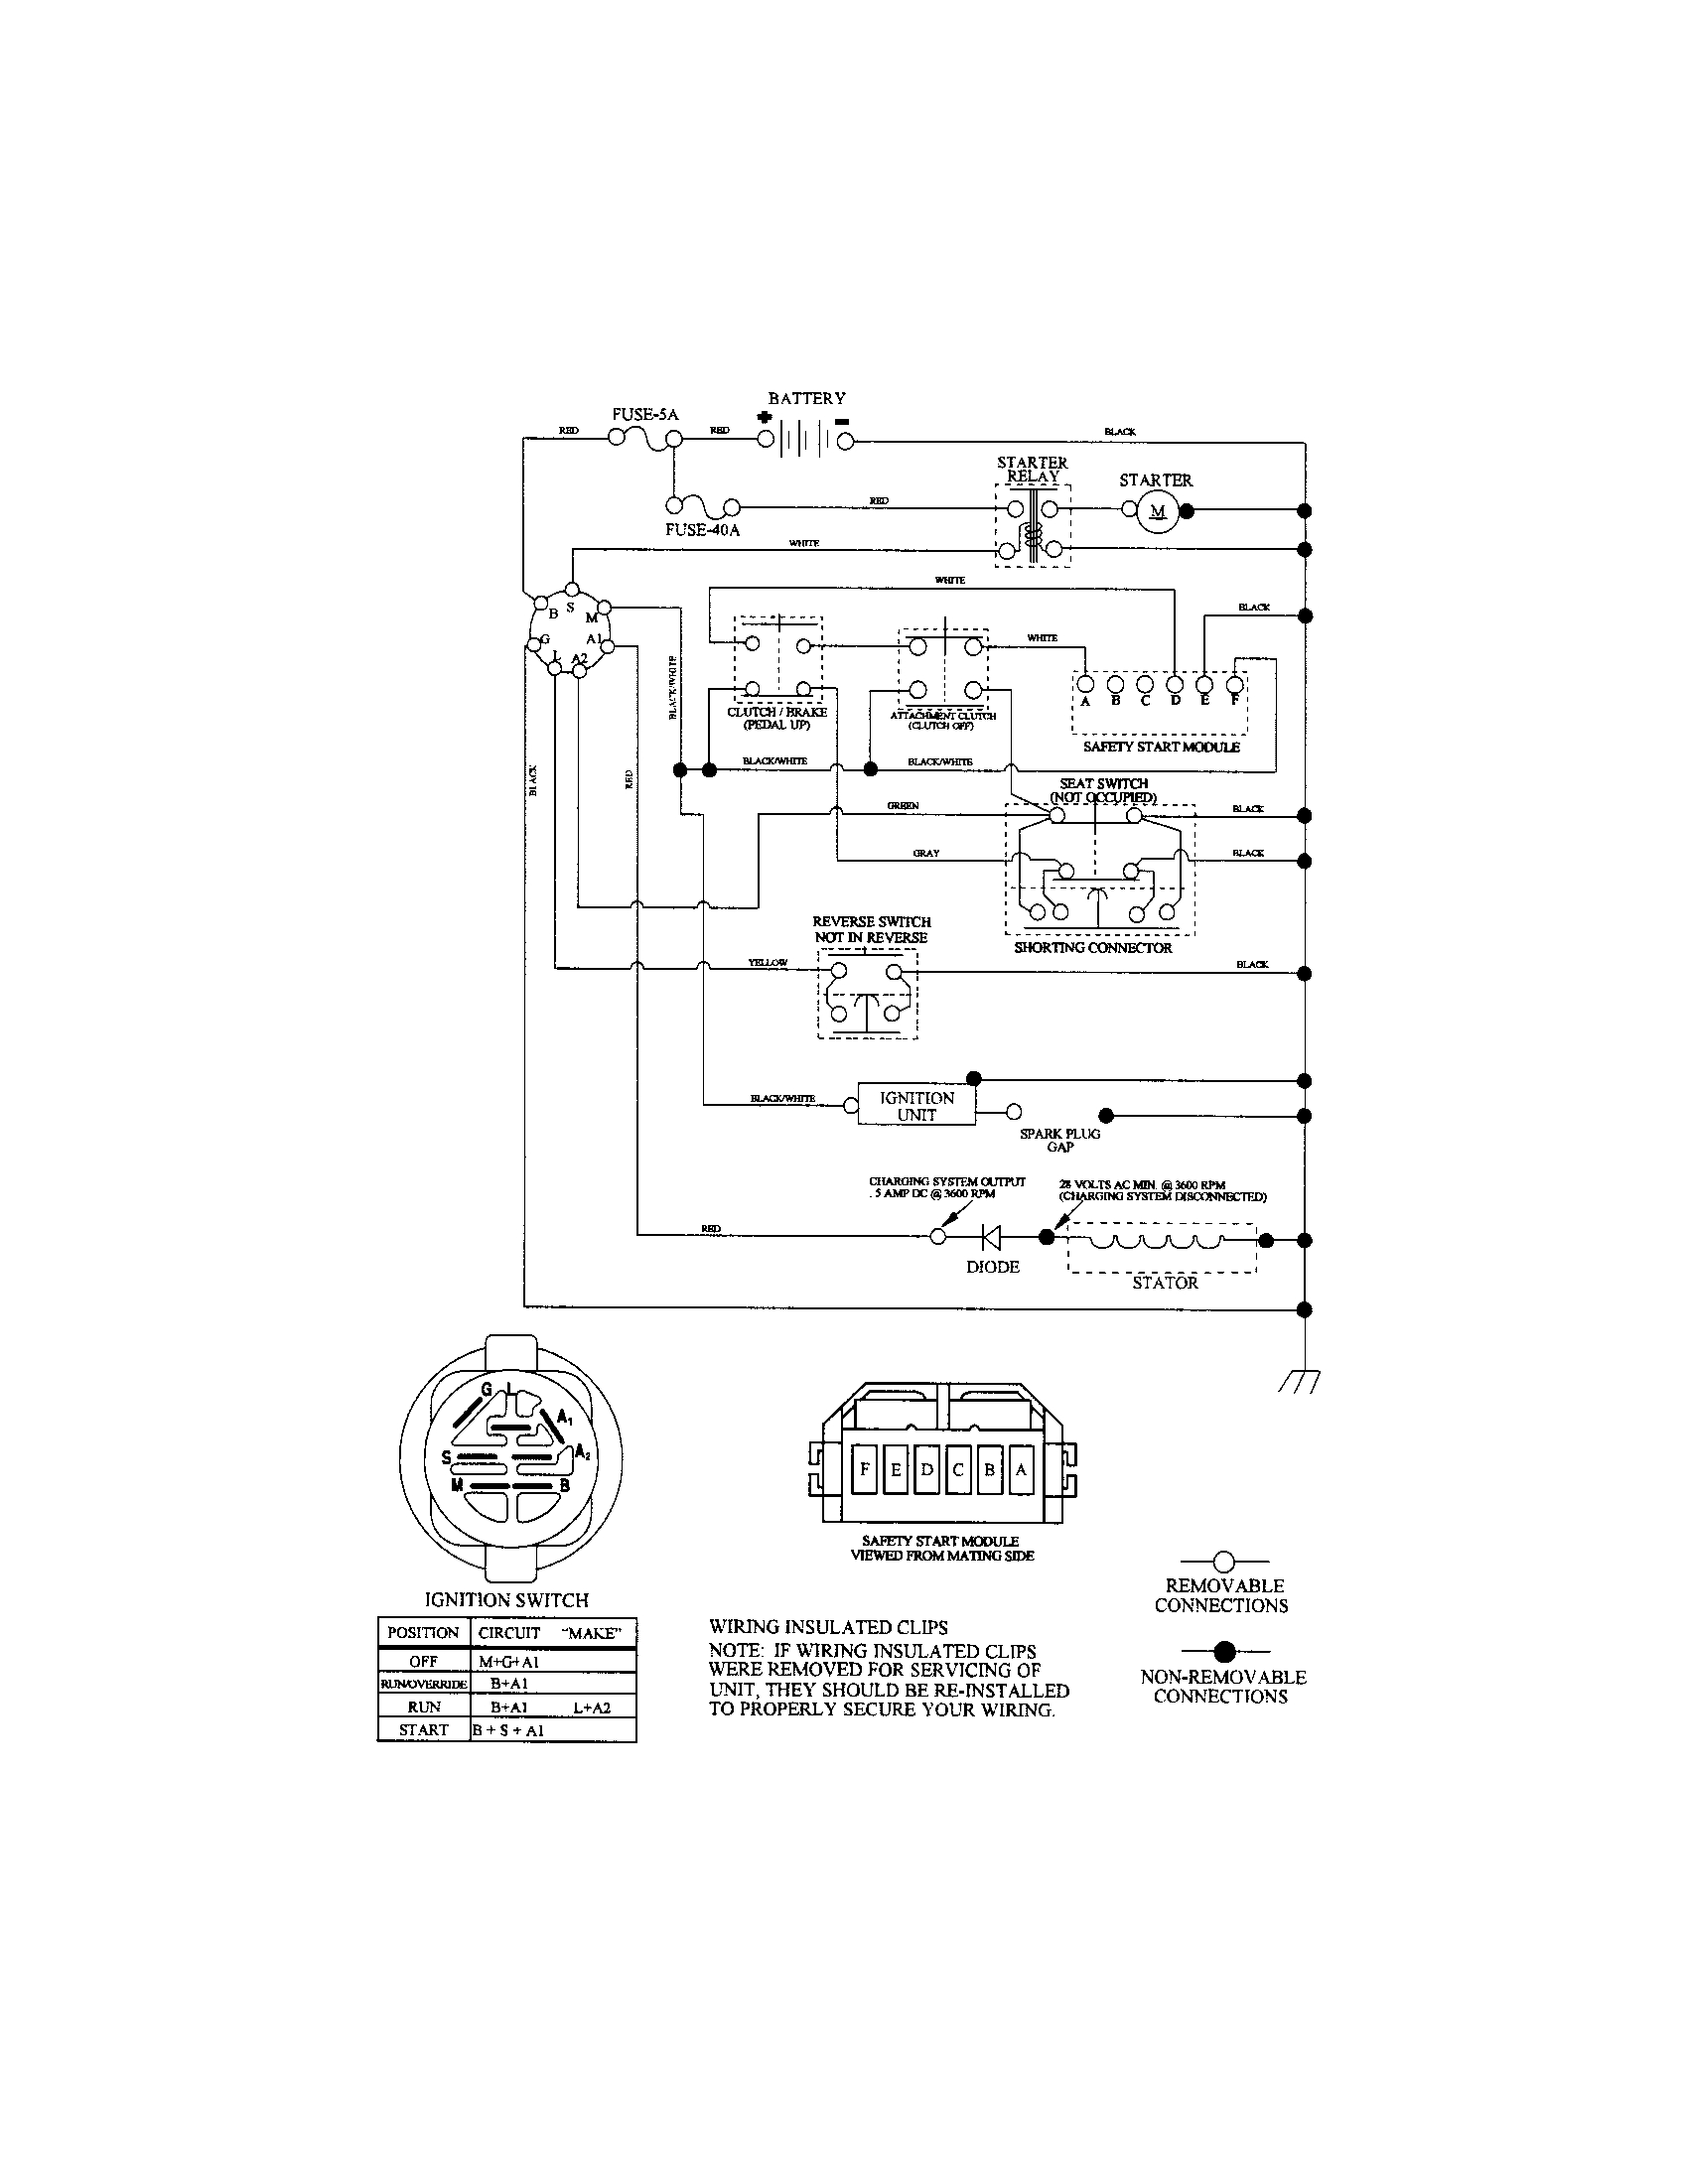 Water Heater Wiring Diagram For Sears on